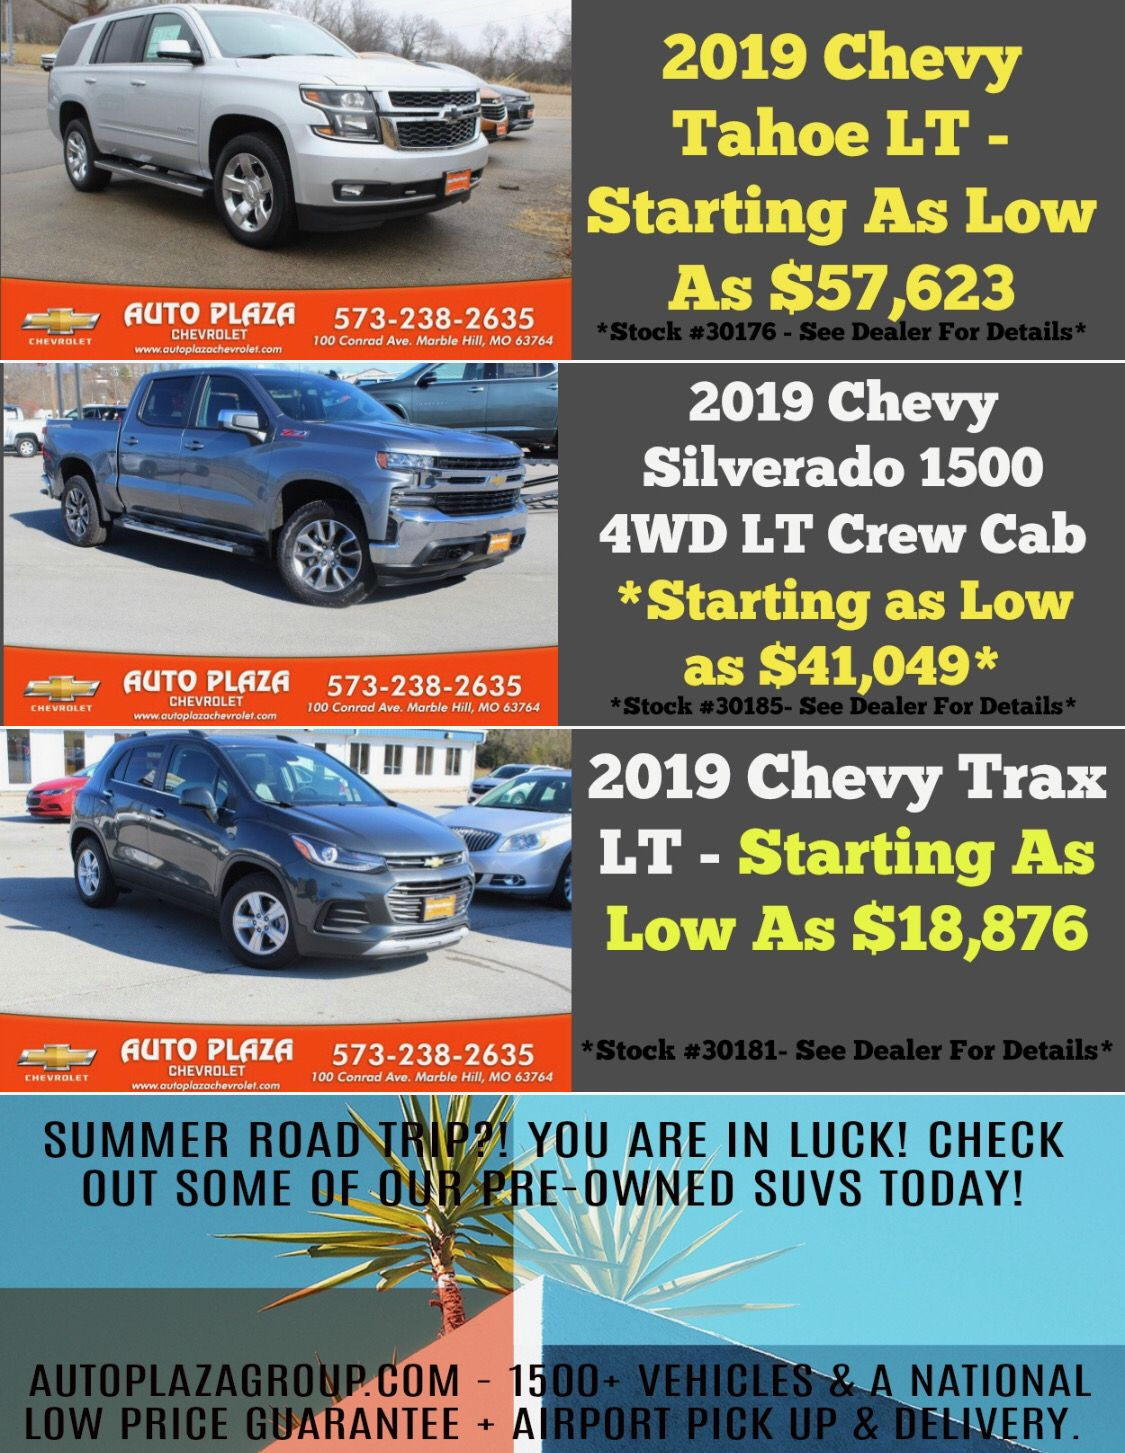 Phenomenal Deals This Month On Brand New Vehicles Planning A